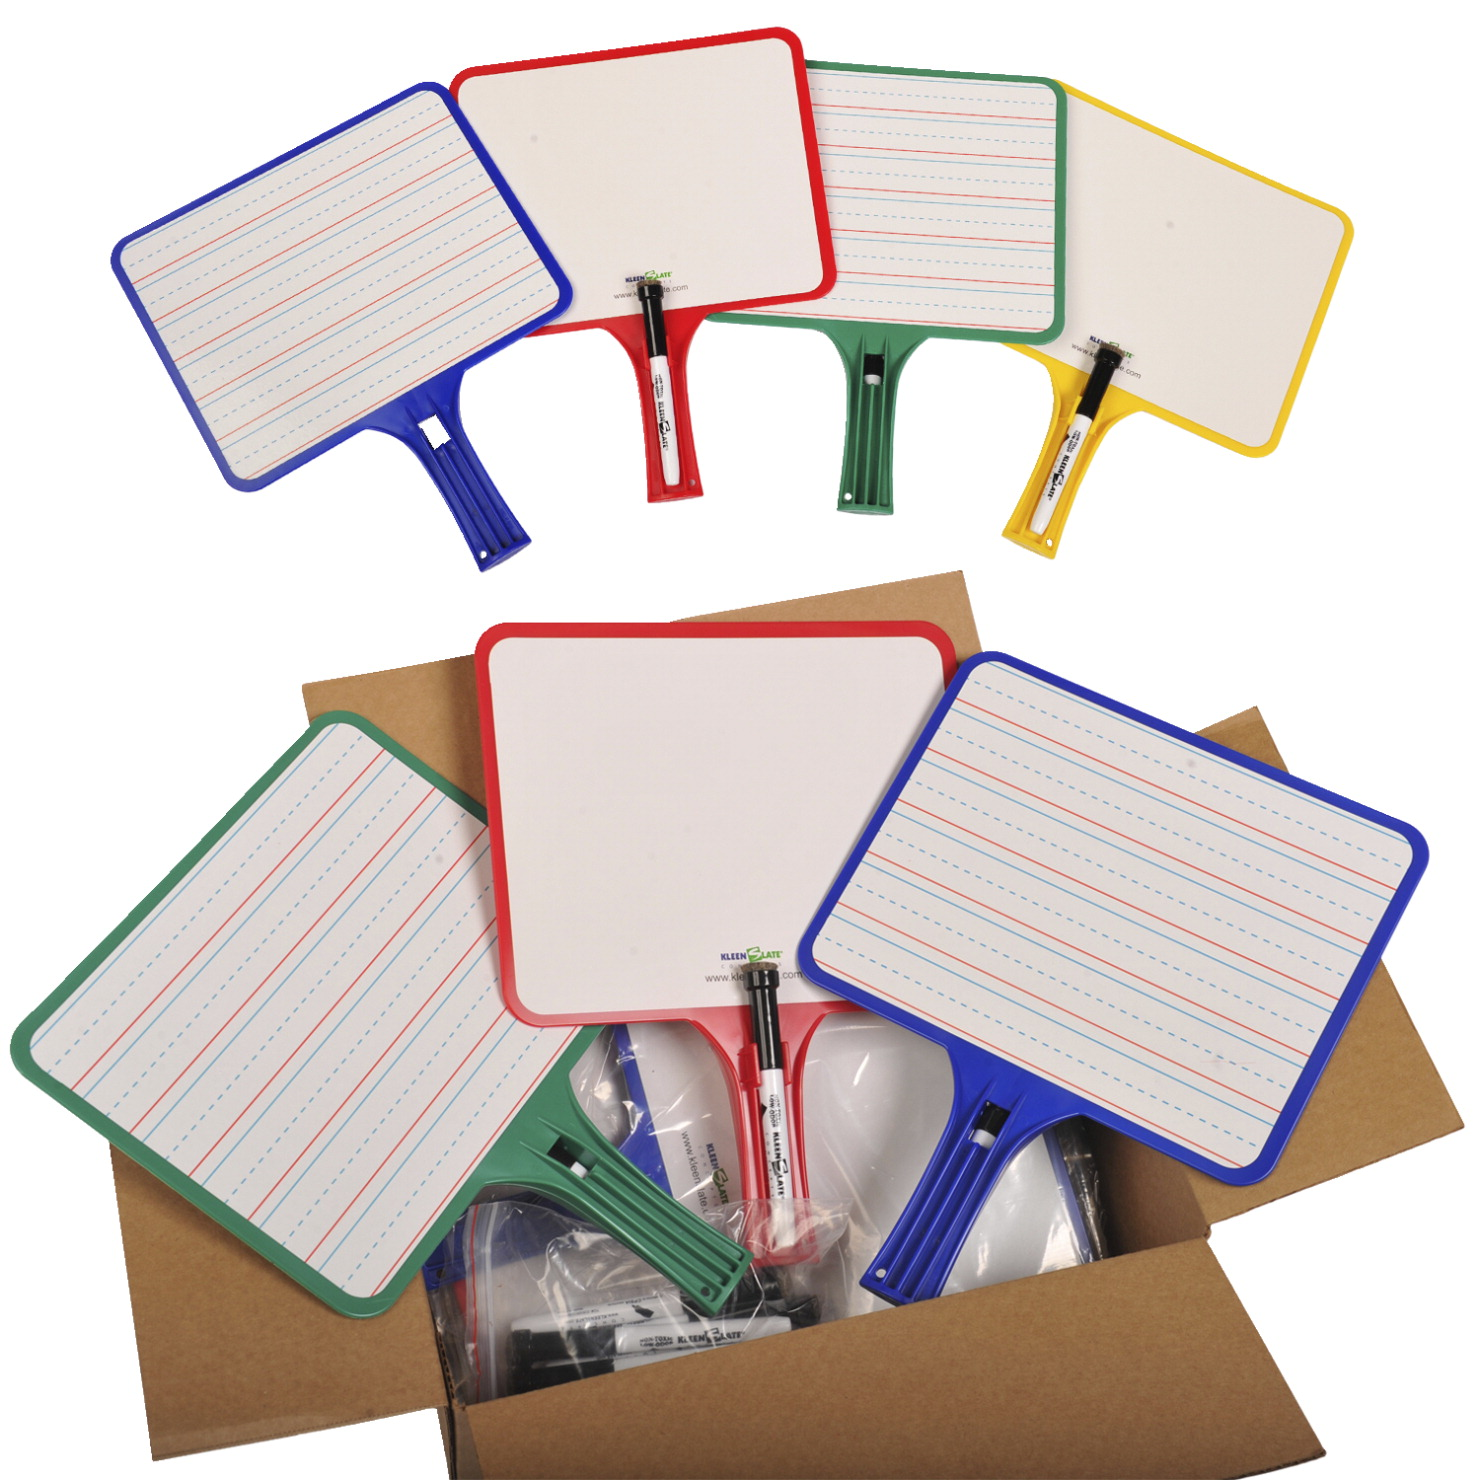 Kwik Chek Rectangular Lined Dry Erase Paddle with (32) Markers, 12 1/2 X 10 in, Assorted Colors, Pack of 32